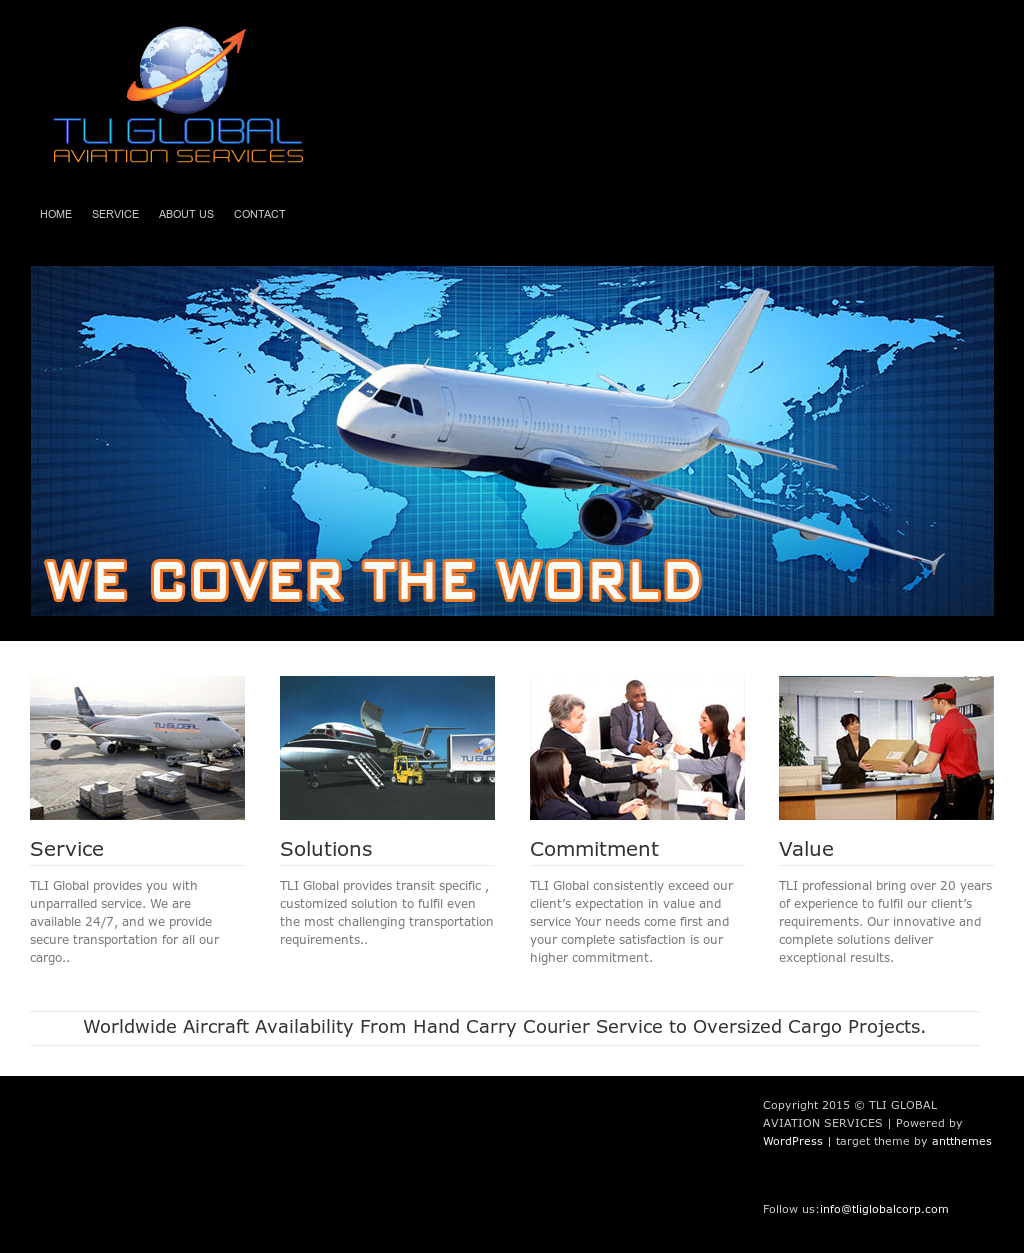 Tli Global Aviation Services Competitors, Revenue and